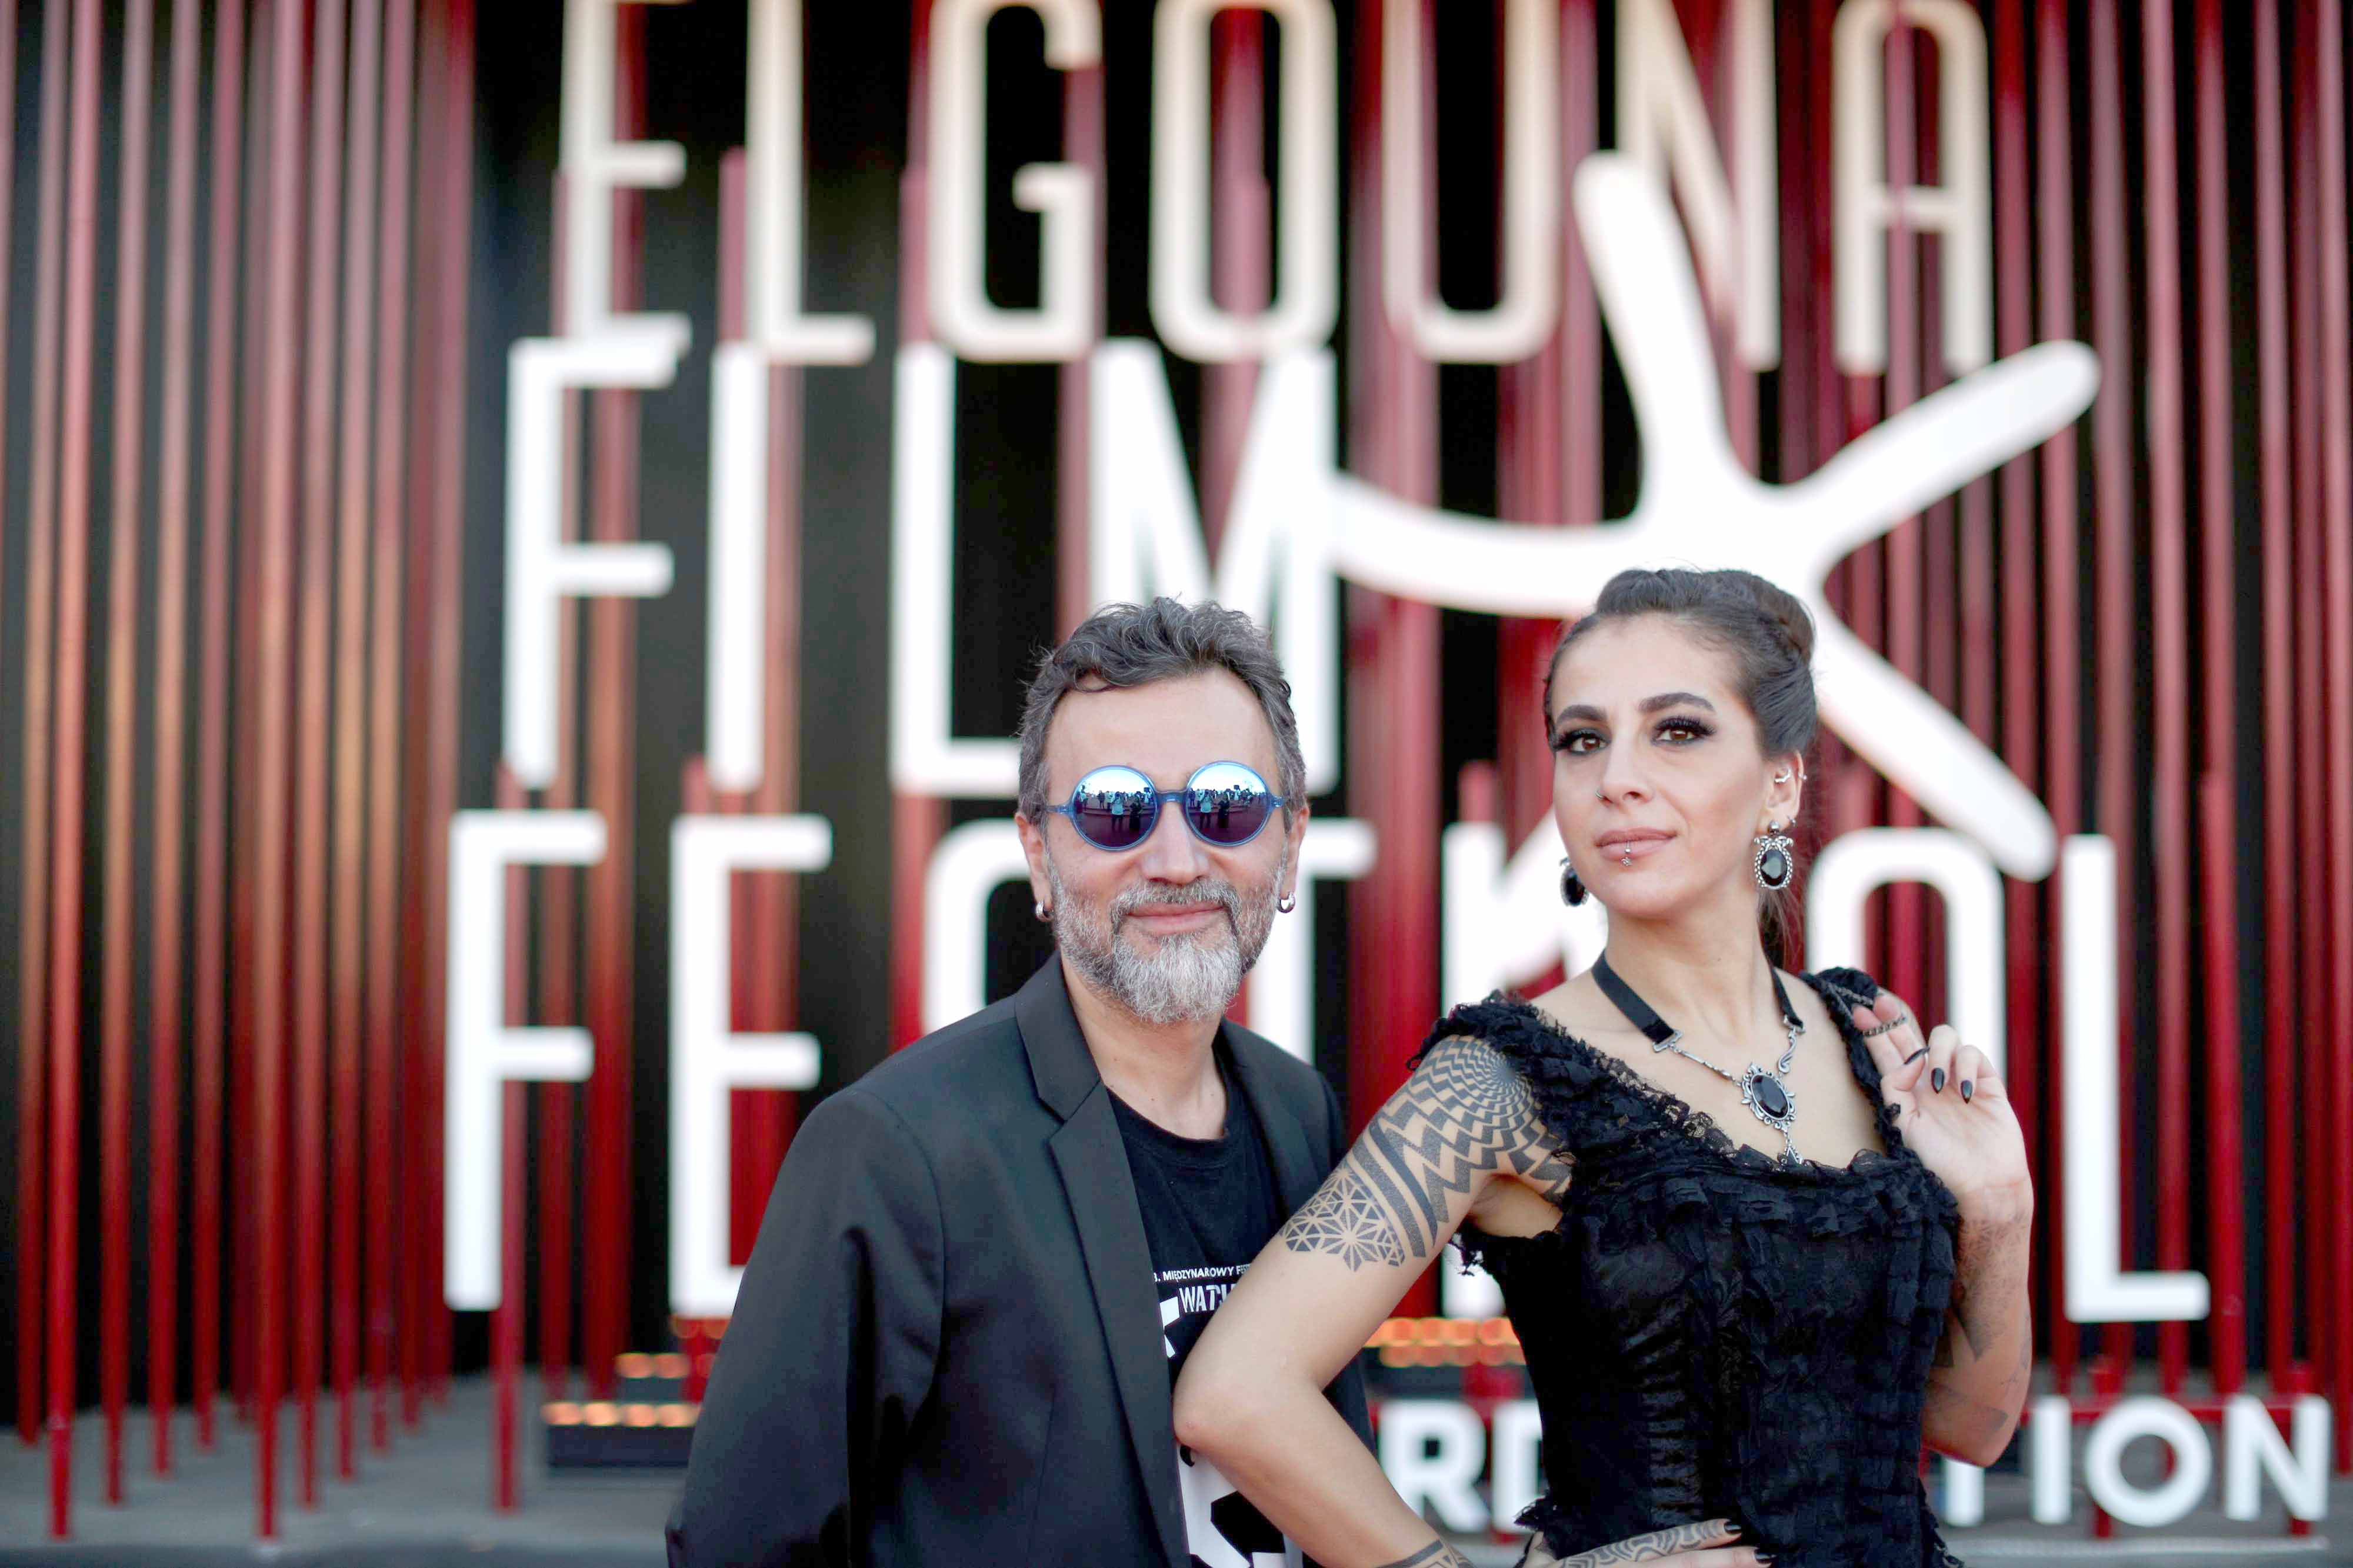 Meeting point for celebrities. Syrian directors Talal Derki (R) and his wife Heba Khaled Sherine on the red carpet during the third edition of El Gouna Film Festival, September 26.(AFP)